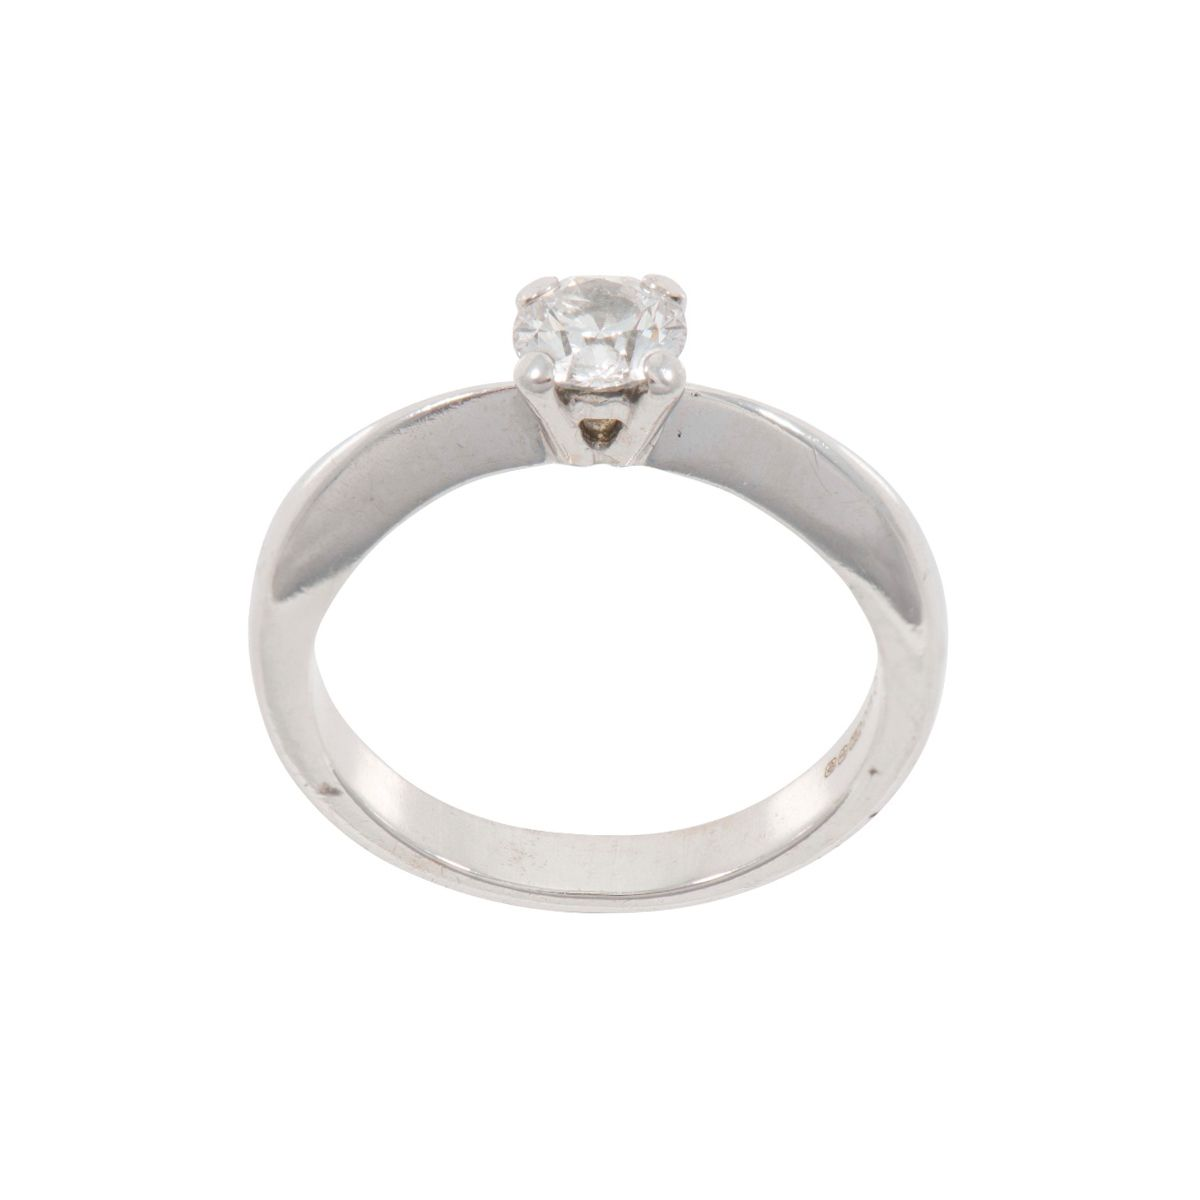 Diamond Solitaire Ring (N) - Q5FR9B